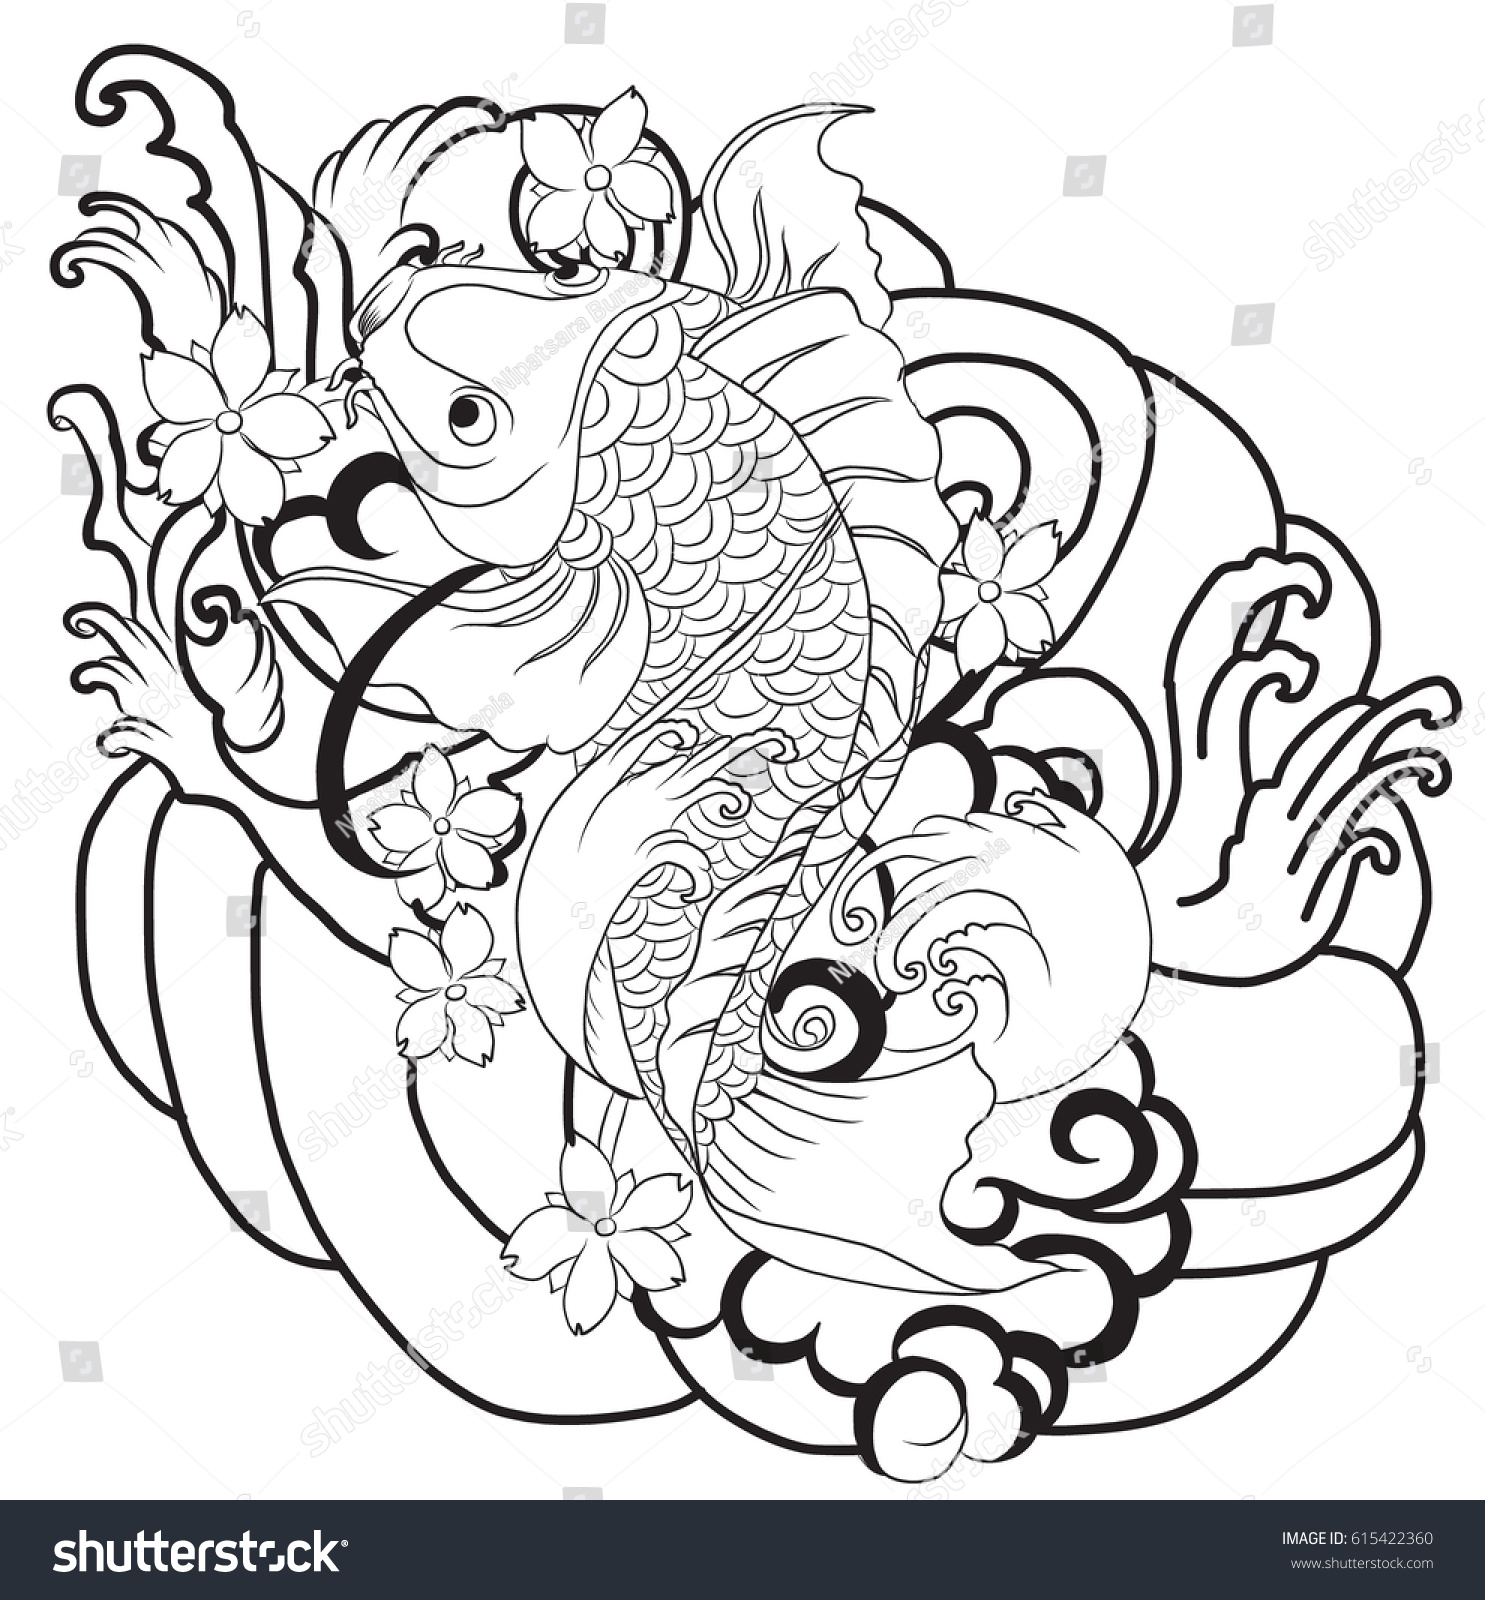 Hand Drawn Outline Koi Fish Tattoo With Flower Japanese Carp Line Drawing Coloring Book Vector